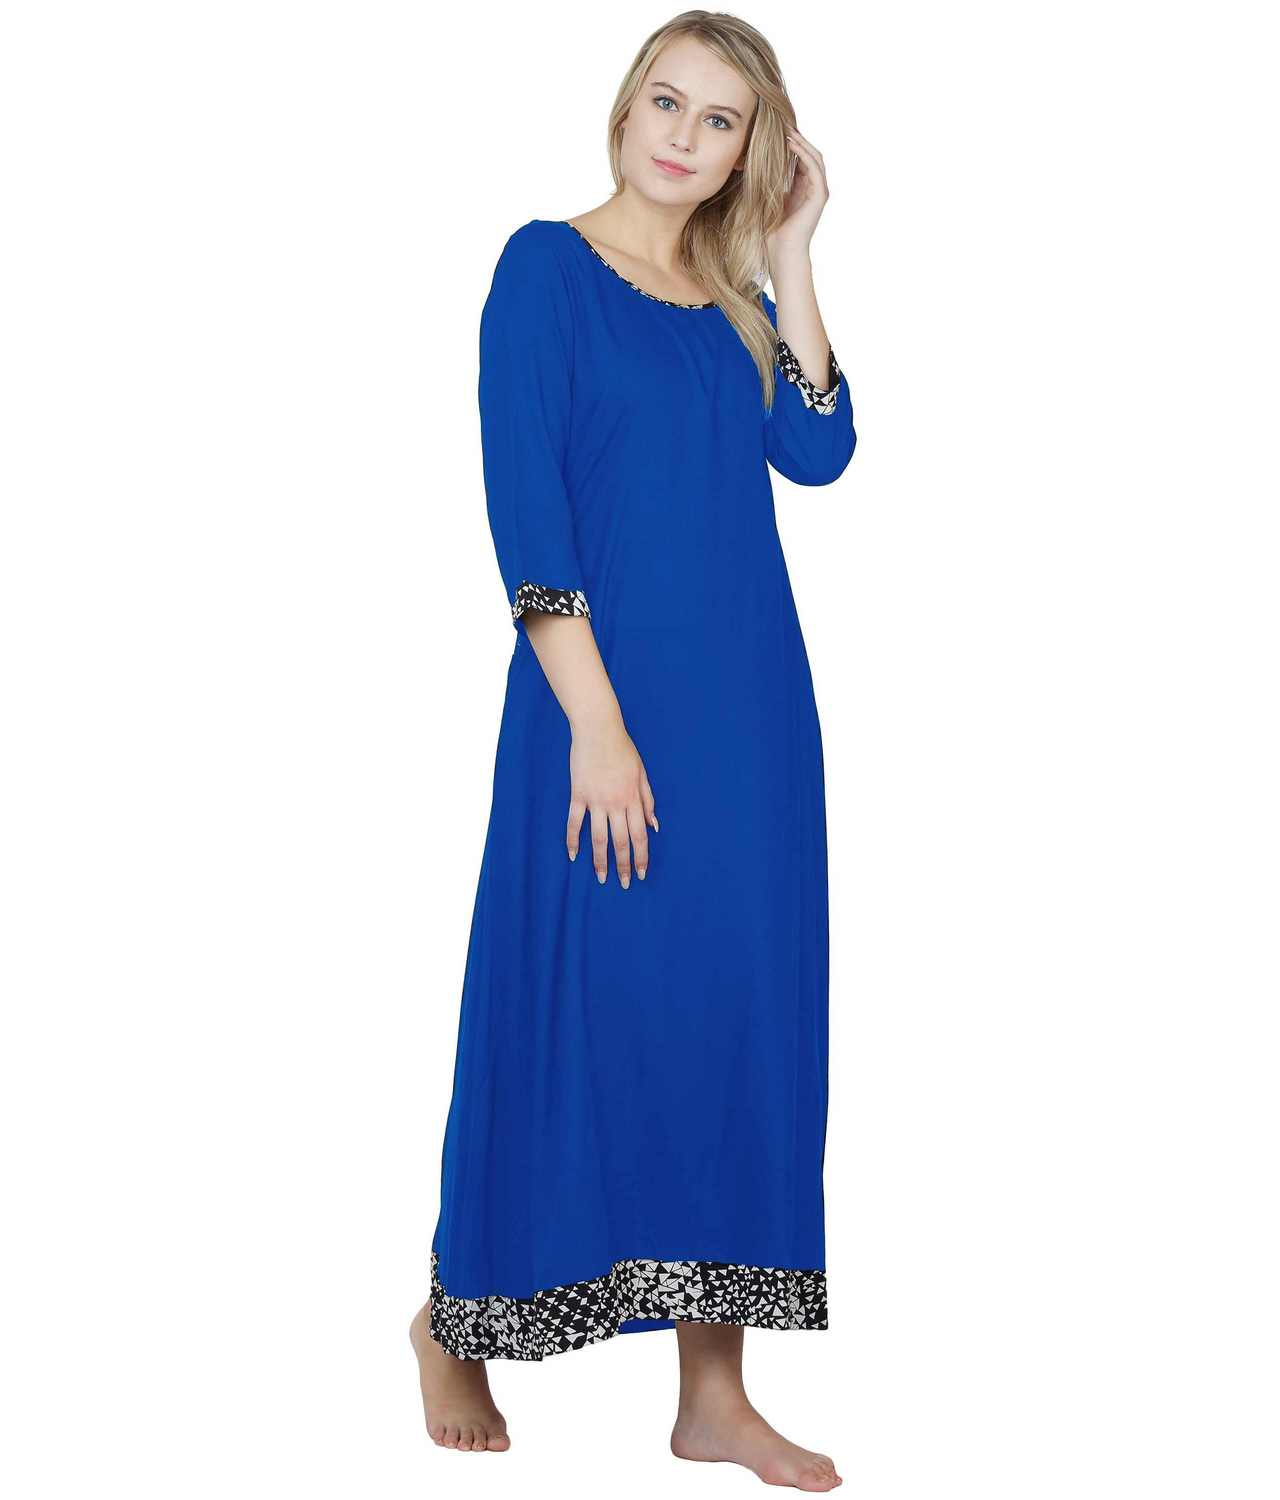 Shift Style Maxi Nighty in Turquoise Blue